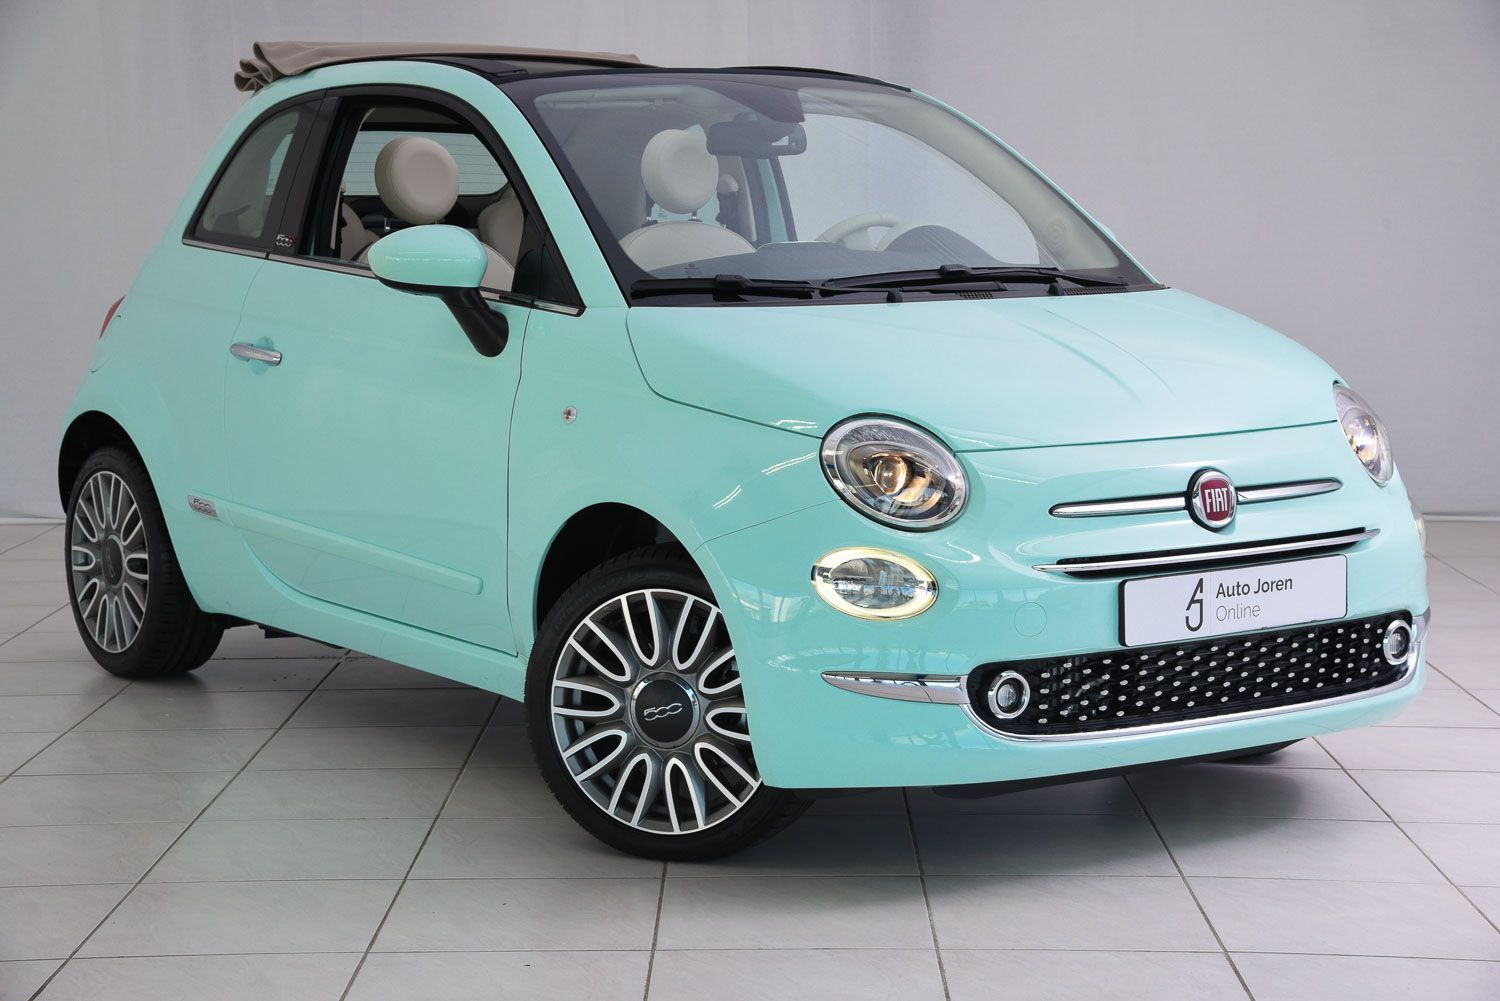 Image Result For Baby Blue Fiat 500 With Images Fiat 500 Fiat